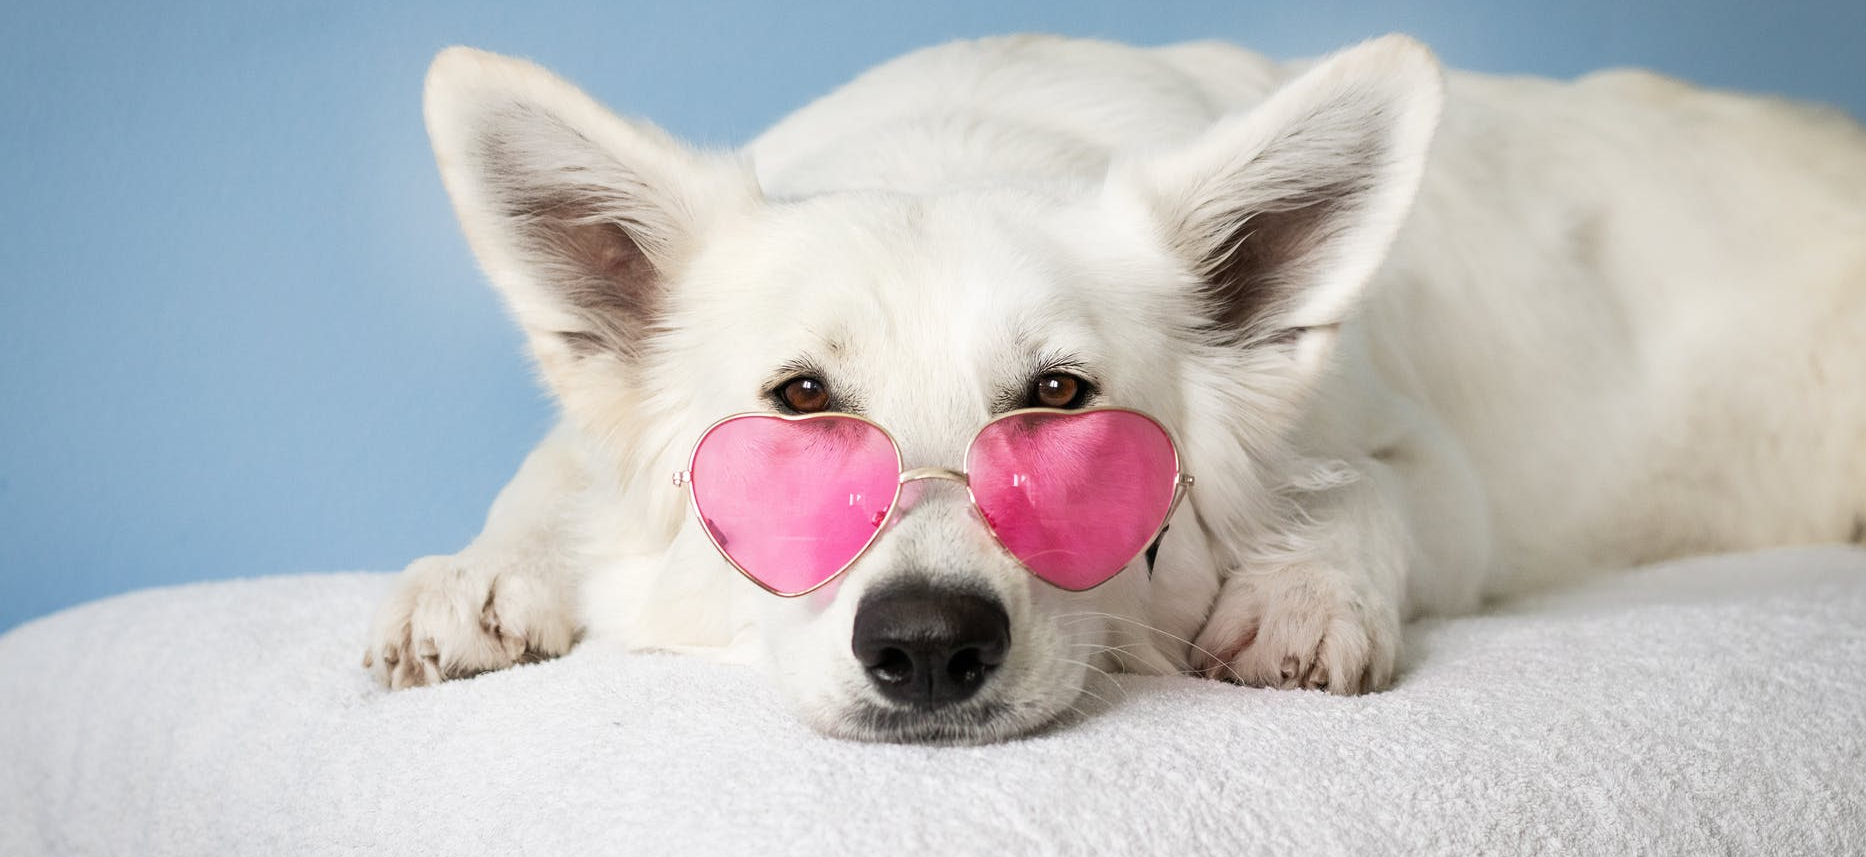 white dog in pink heart shaped sunglasses.